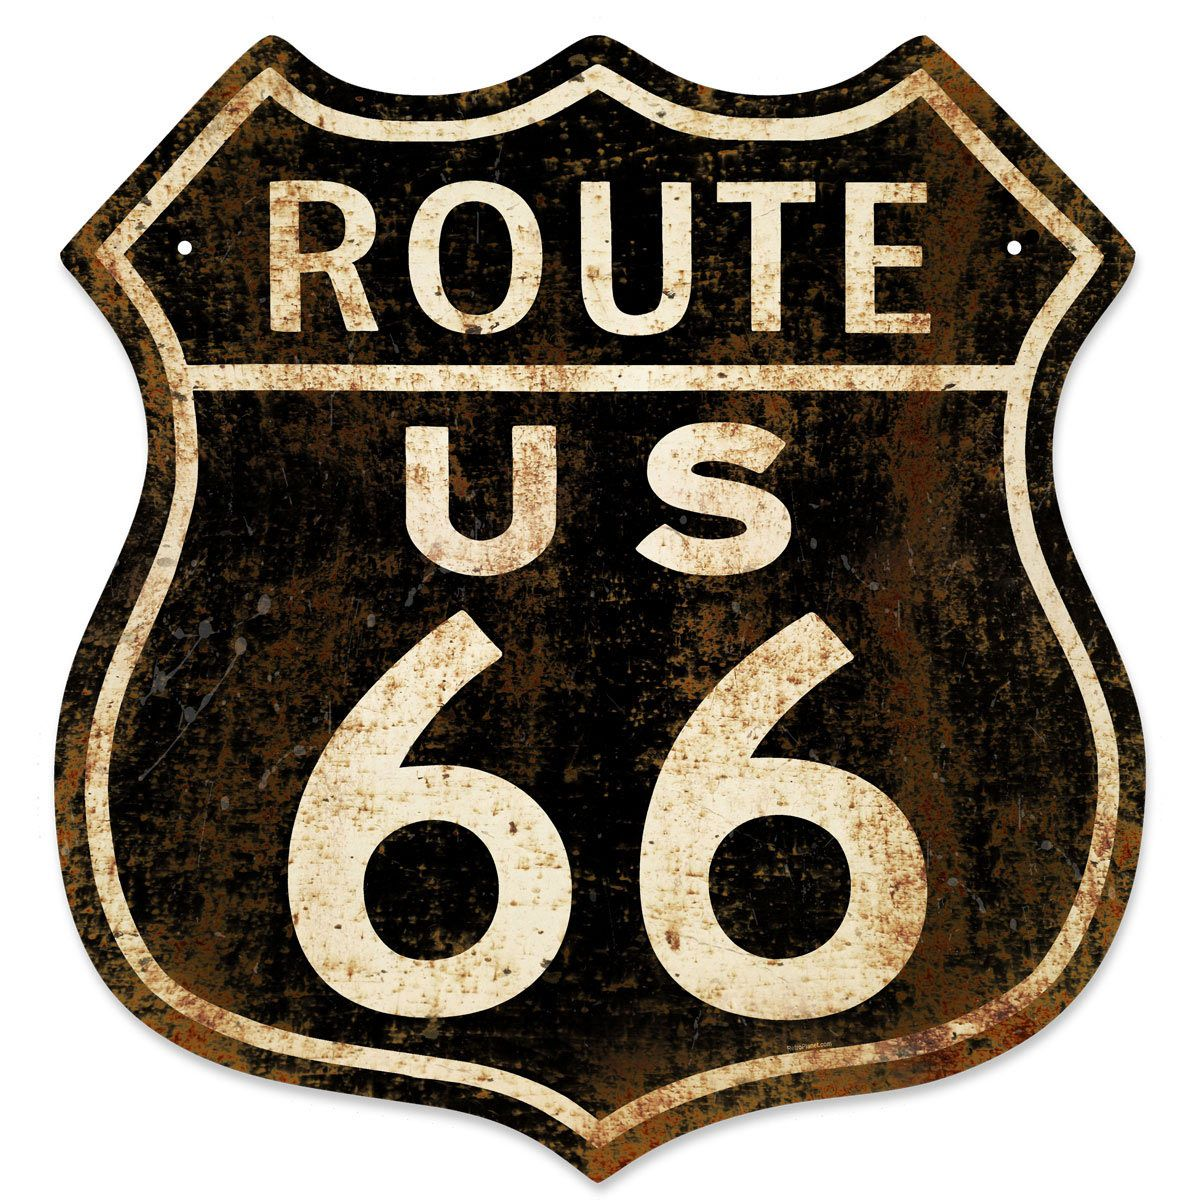 Route 66 Distressed Black Shield Metal Sign 15 x 16